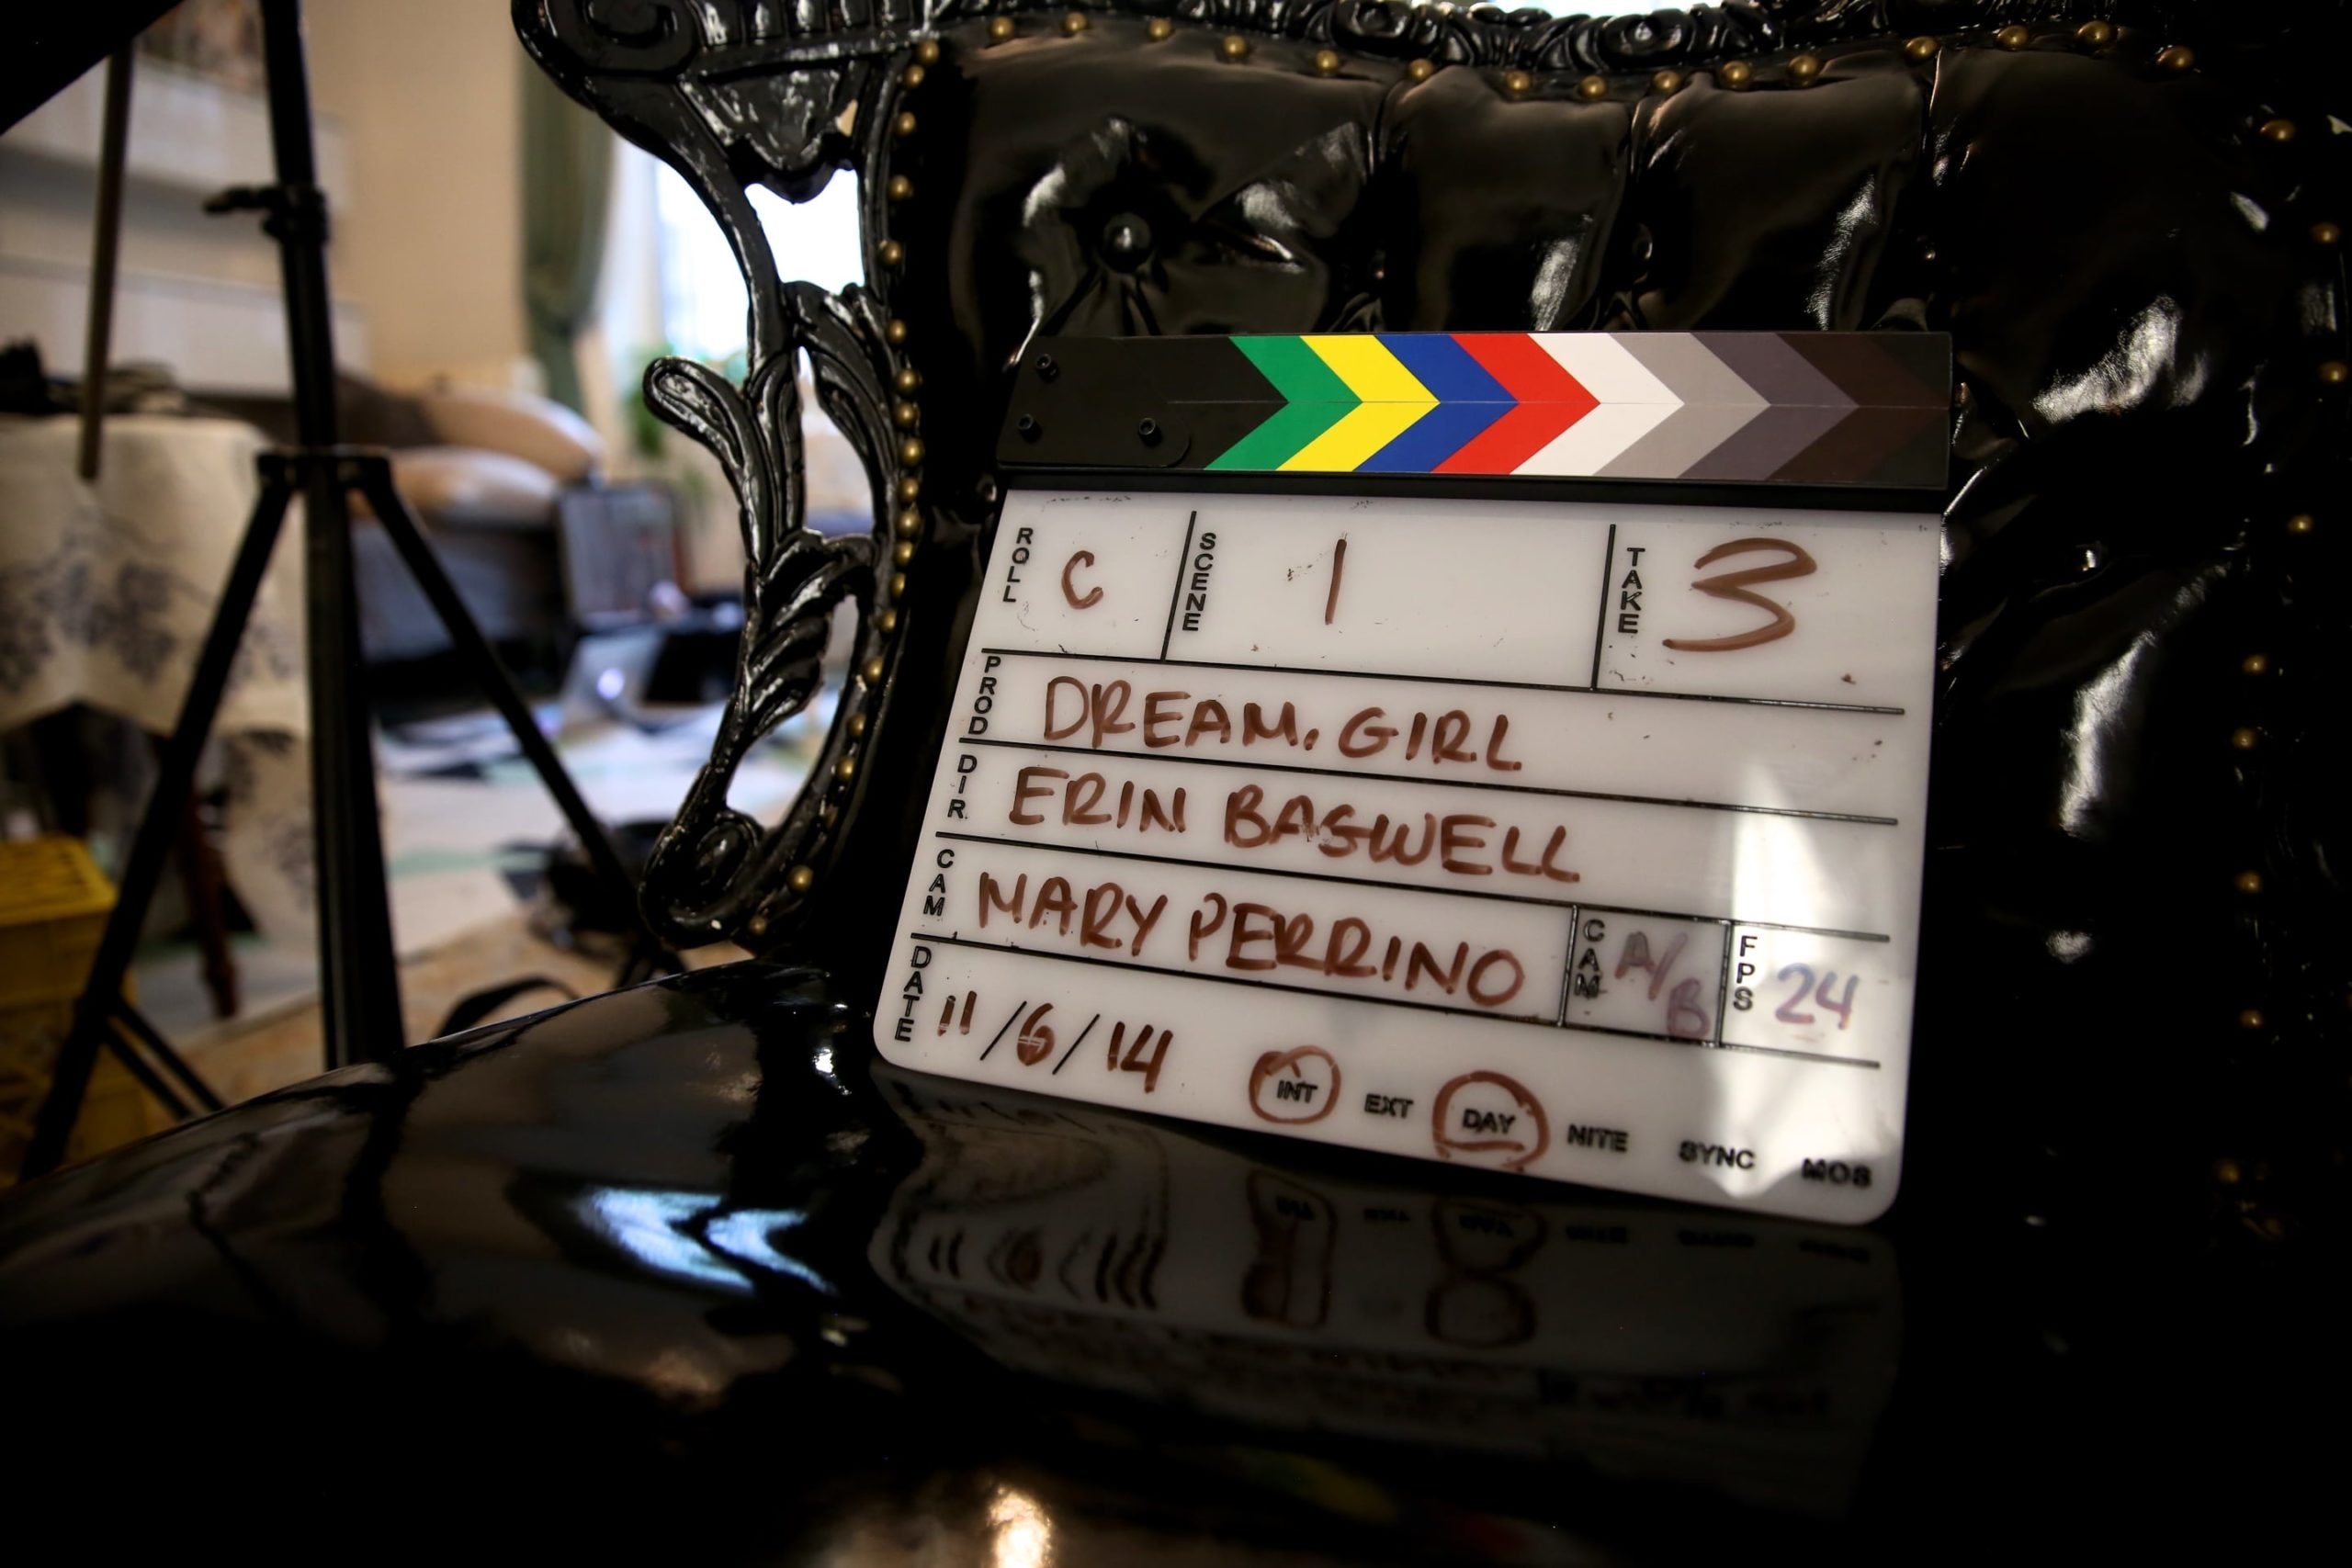 Clapperboard - Film production on female entrepreneurs and feminism